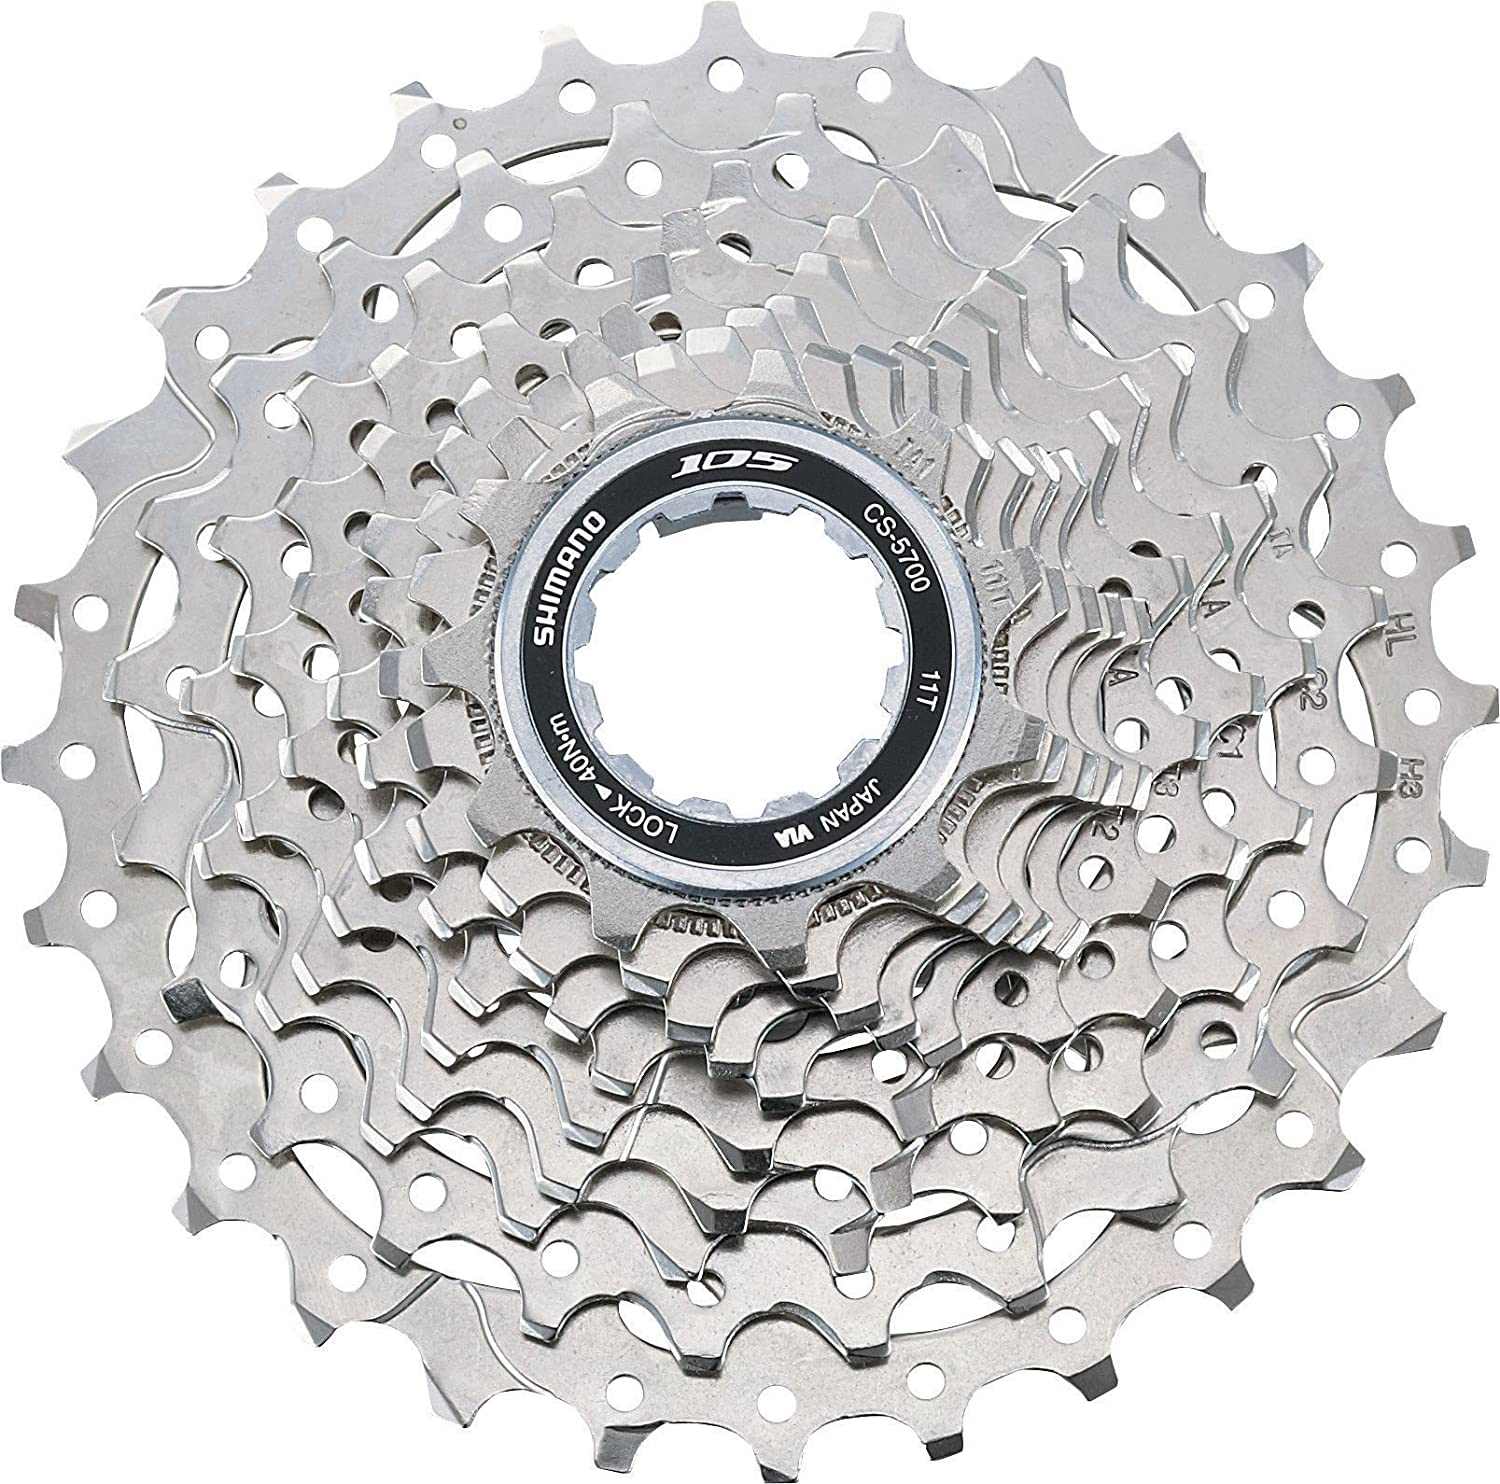 Shimano cassette 105 10 speed silver (Design  1128 sprockets) (japan import)